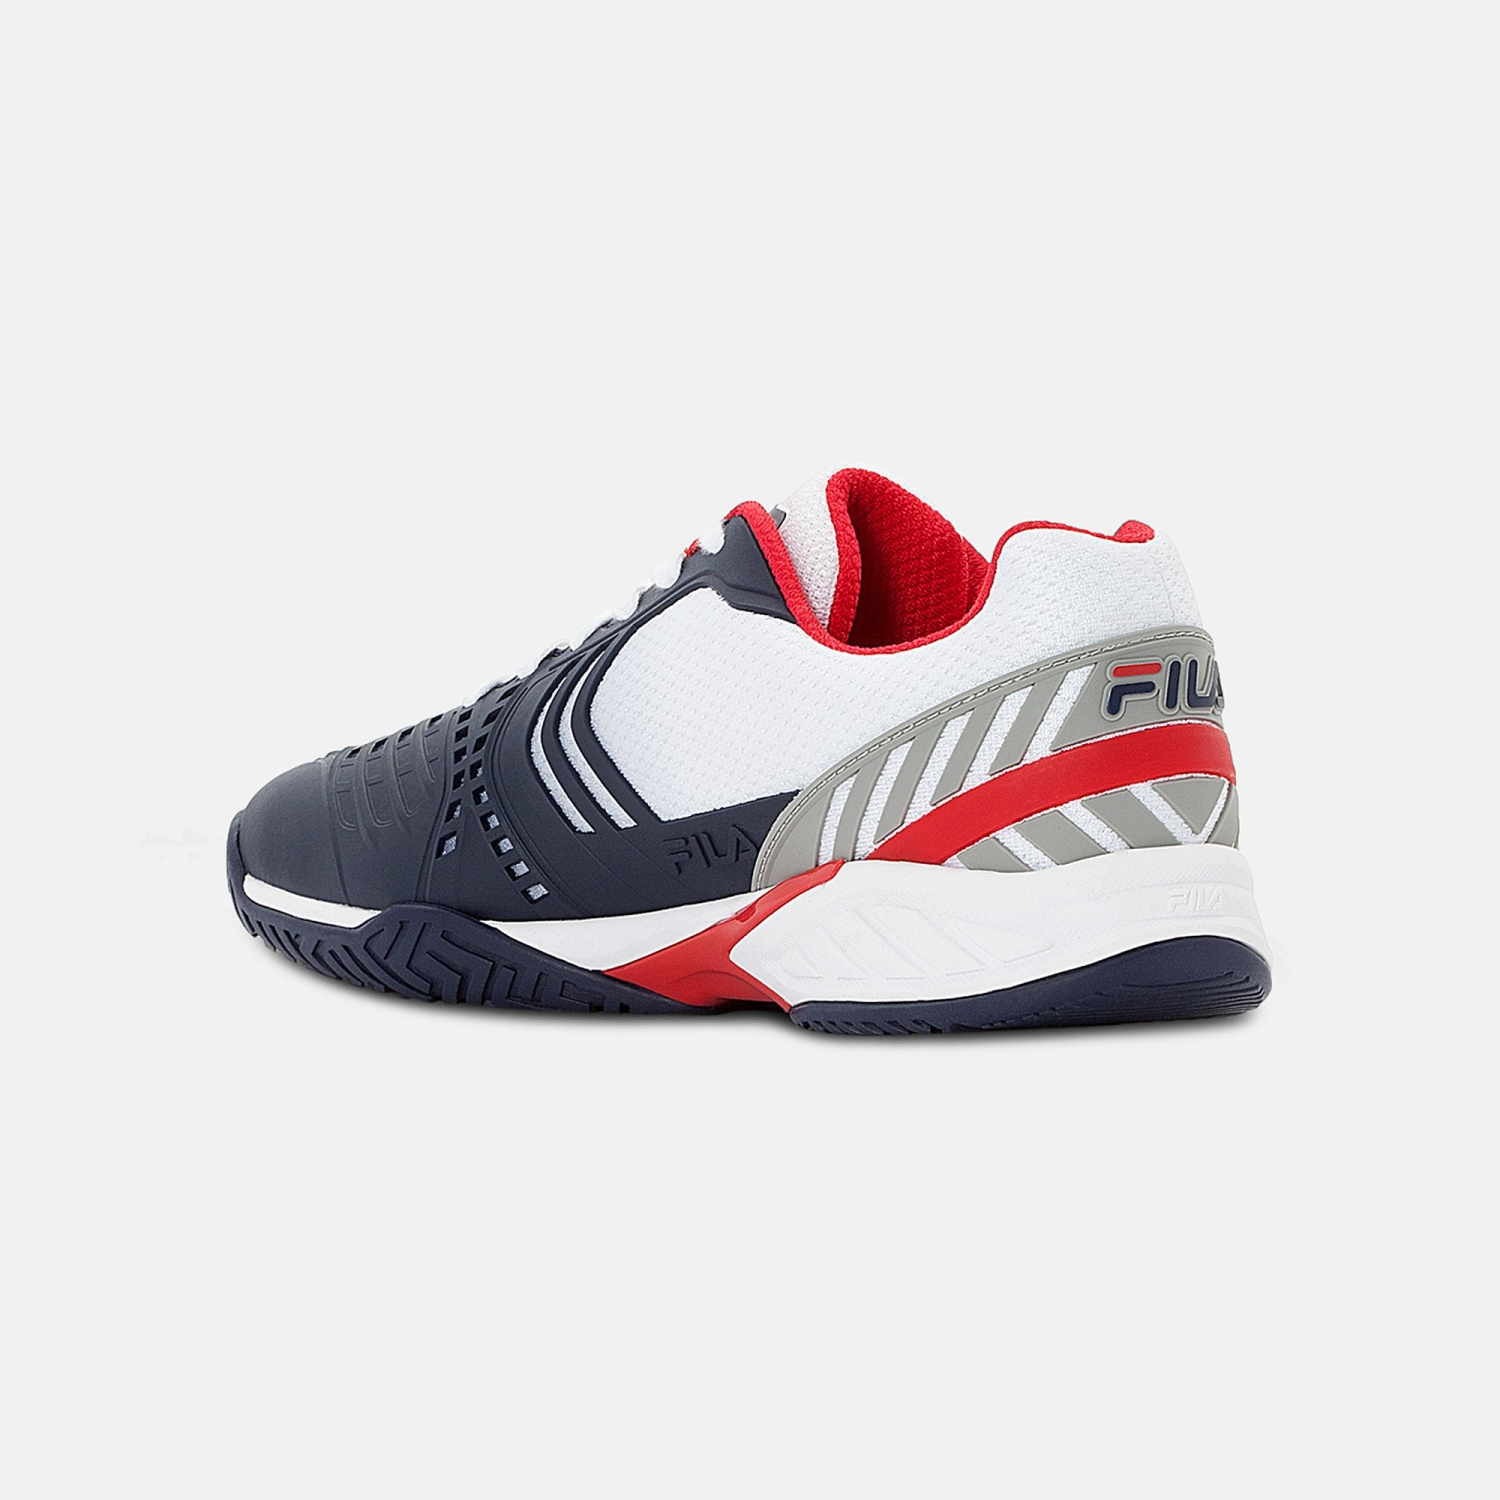 Fila Axilus 2 Energized Tennis Shoe Men white-navy-red Bild 3